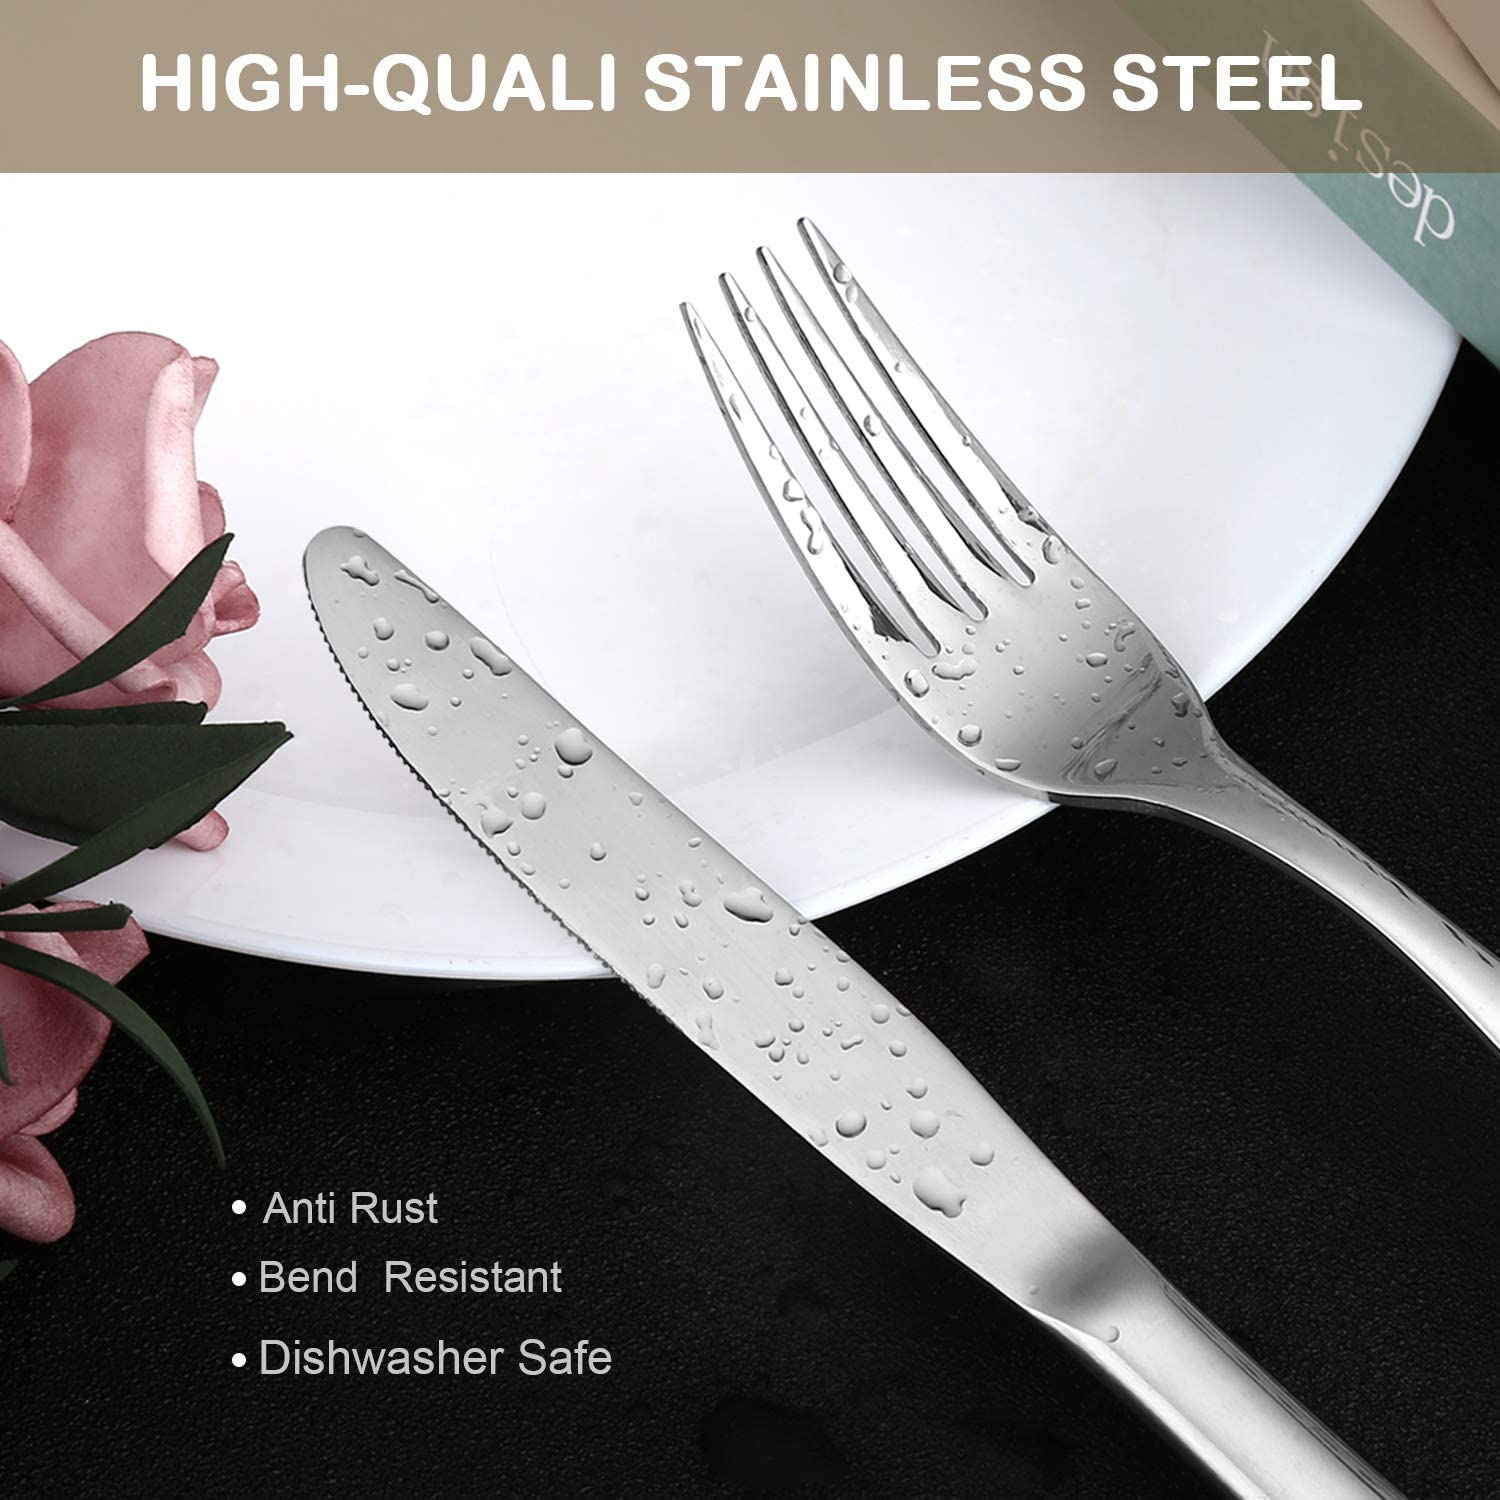 Black 20-Piece Black Flatware Silverware Set Heavy Duty Knifes//Forks//Spoons Stainless Steel Utensils Tableware Sets Service for 4 Dishwasher Safe and Easy to Clean